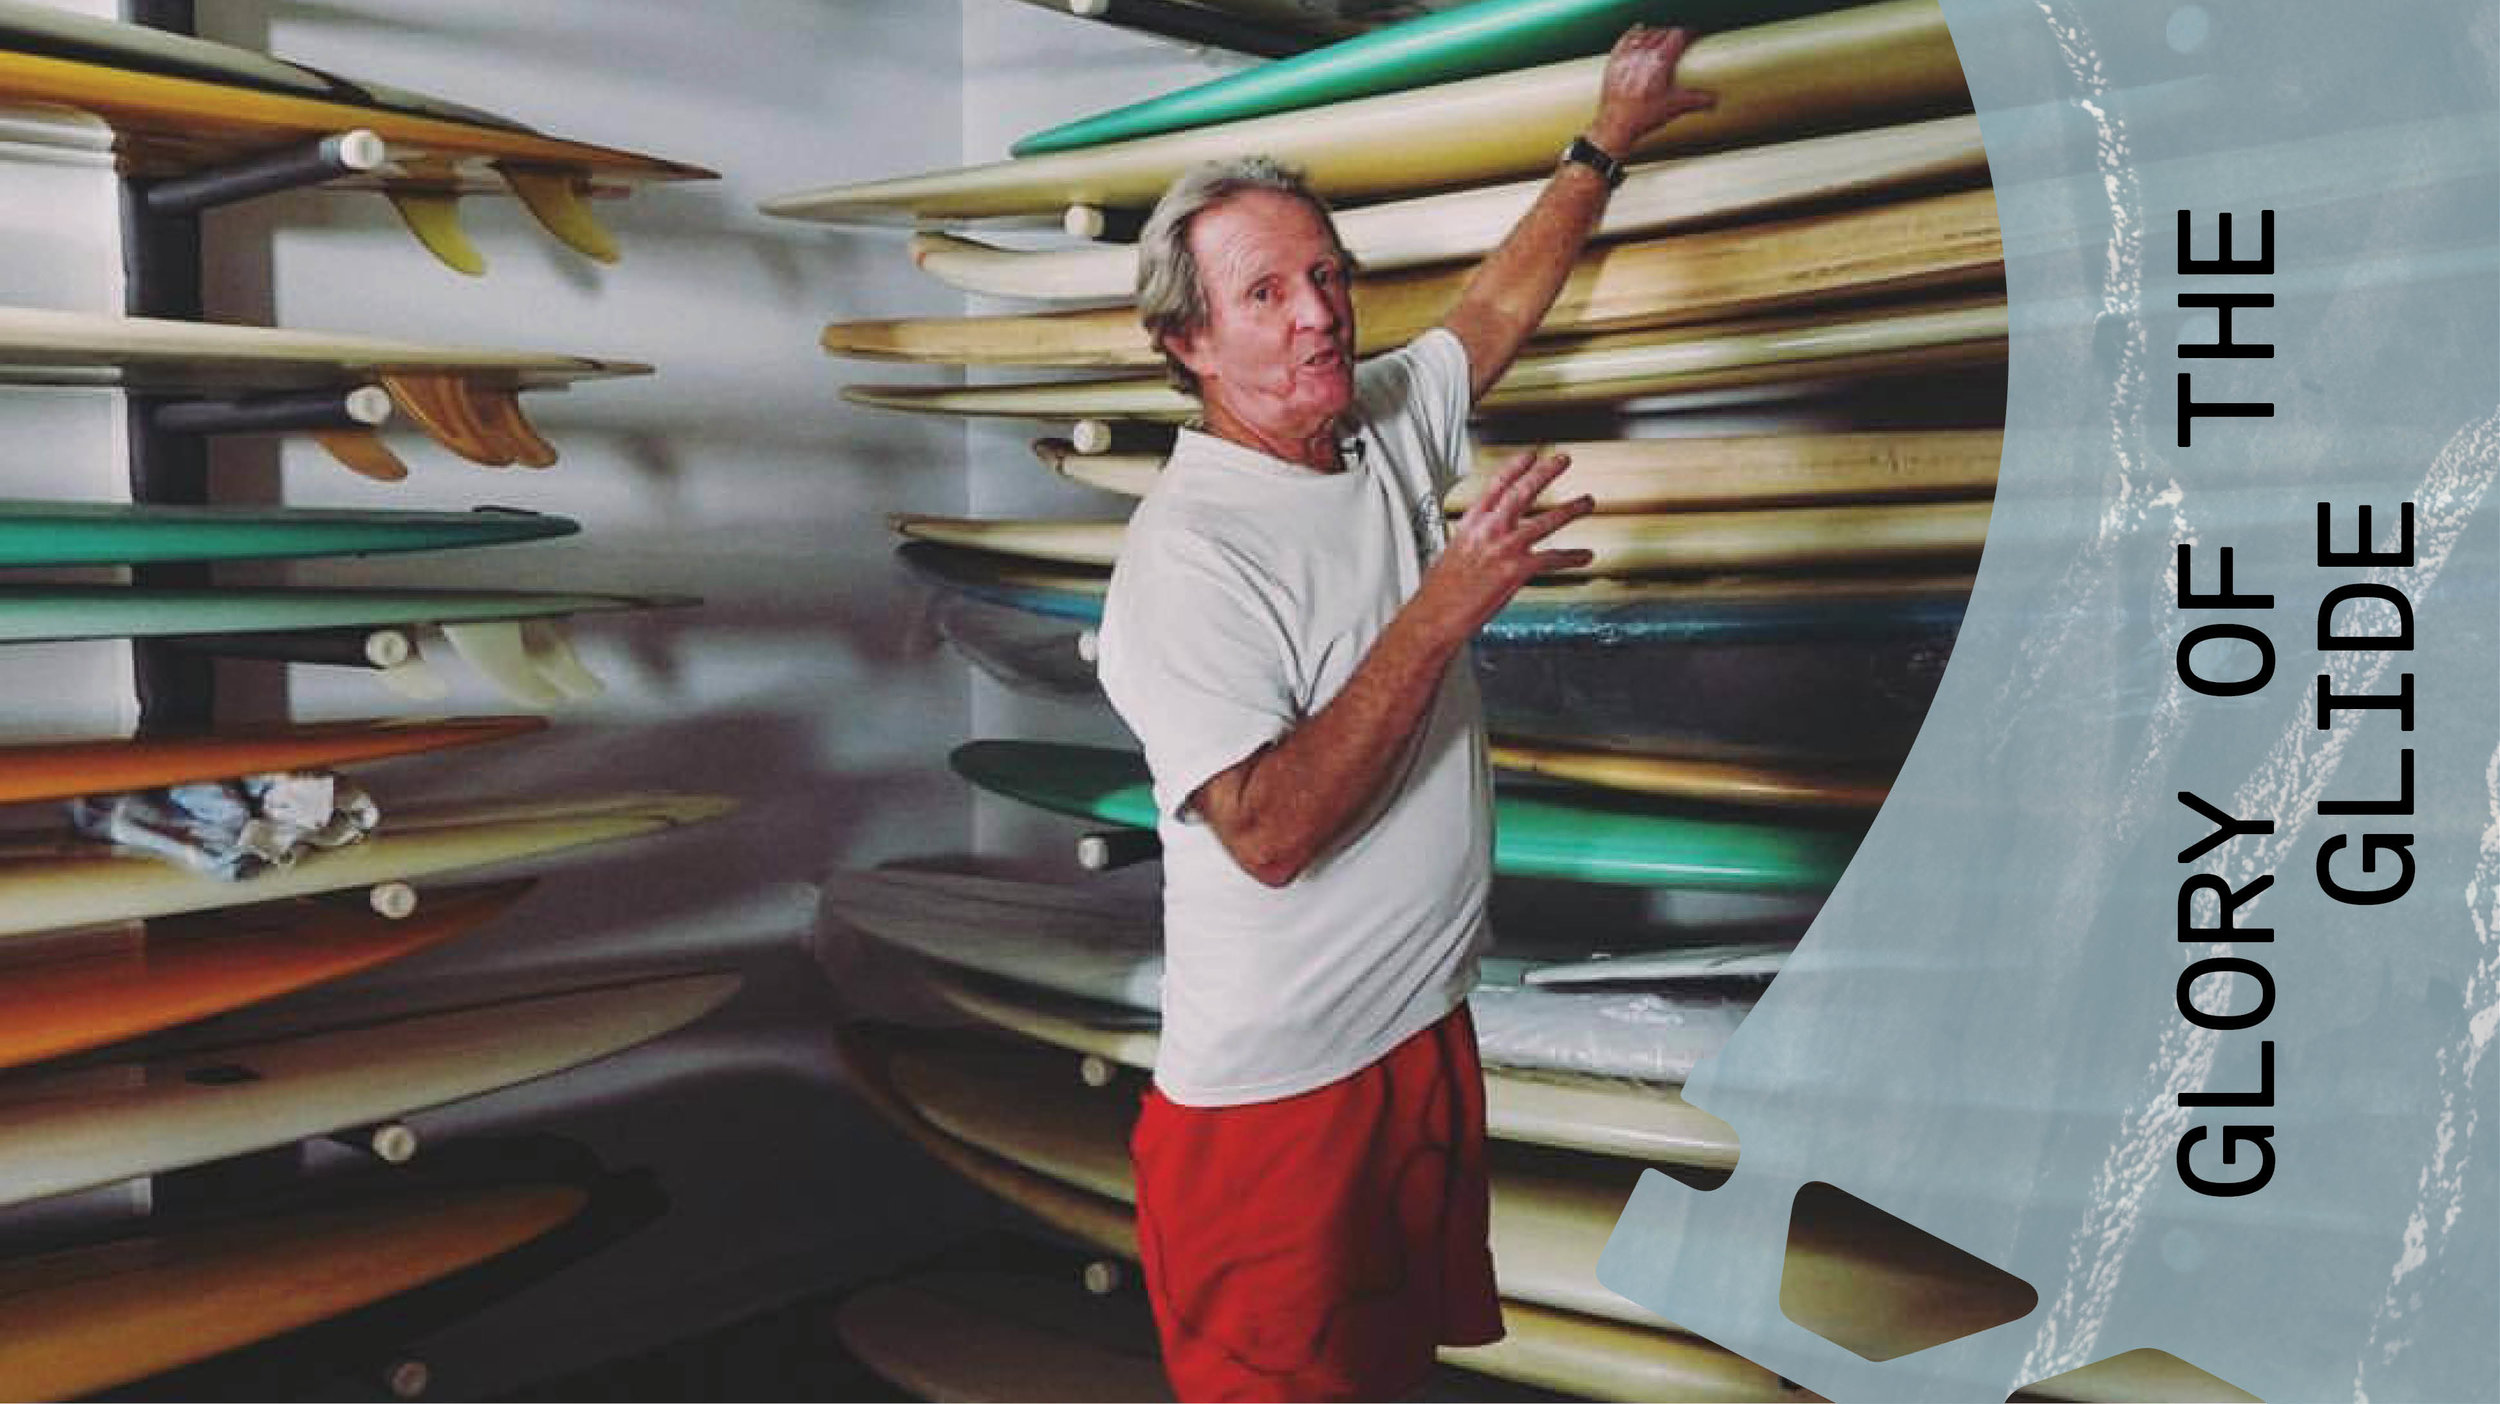 GLORY OF THE GLIDE - Trim straight into the essence of surfing |European Premiere